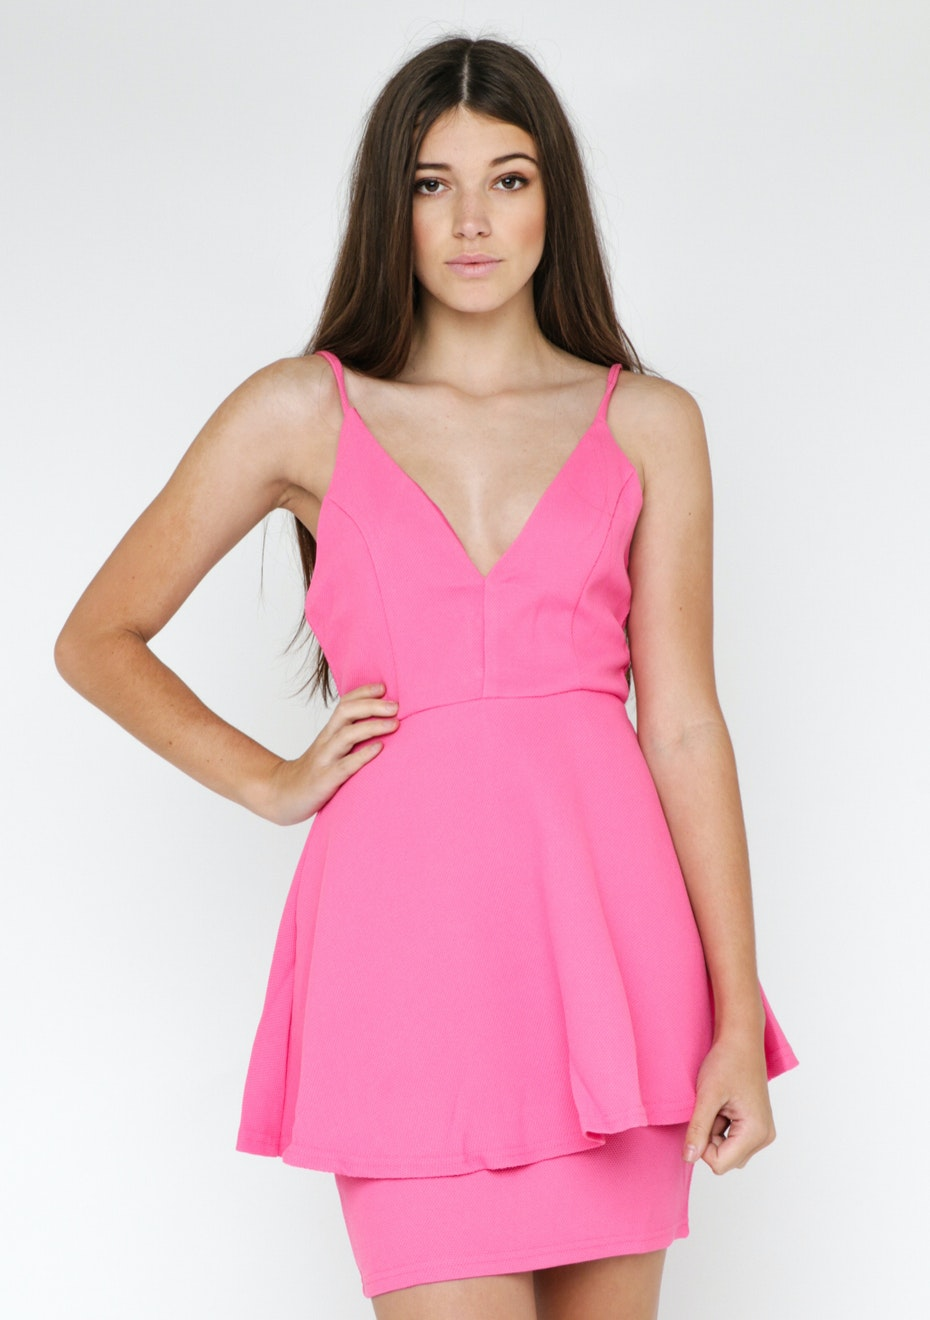 Lioness Piper Party Plunge Dress  - Pink